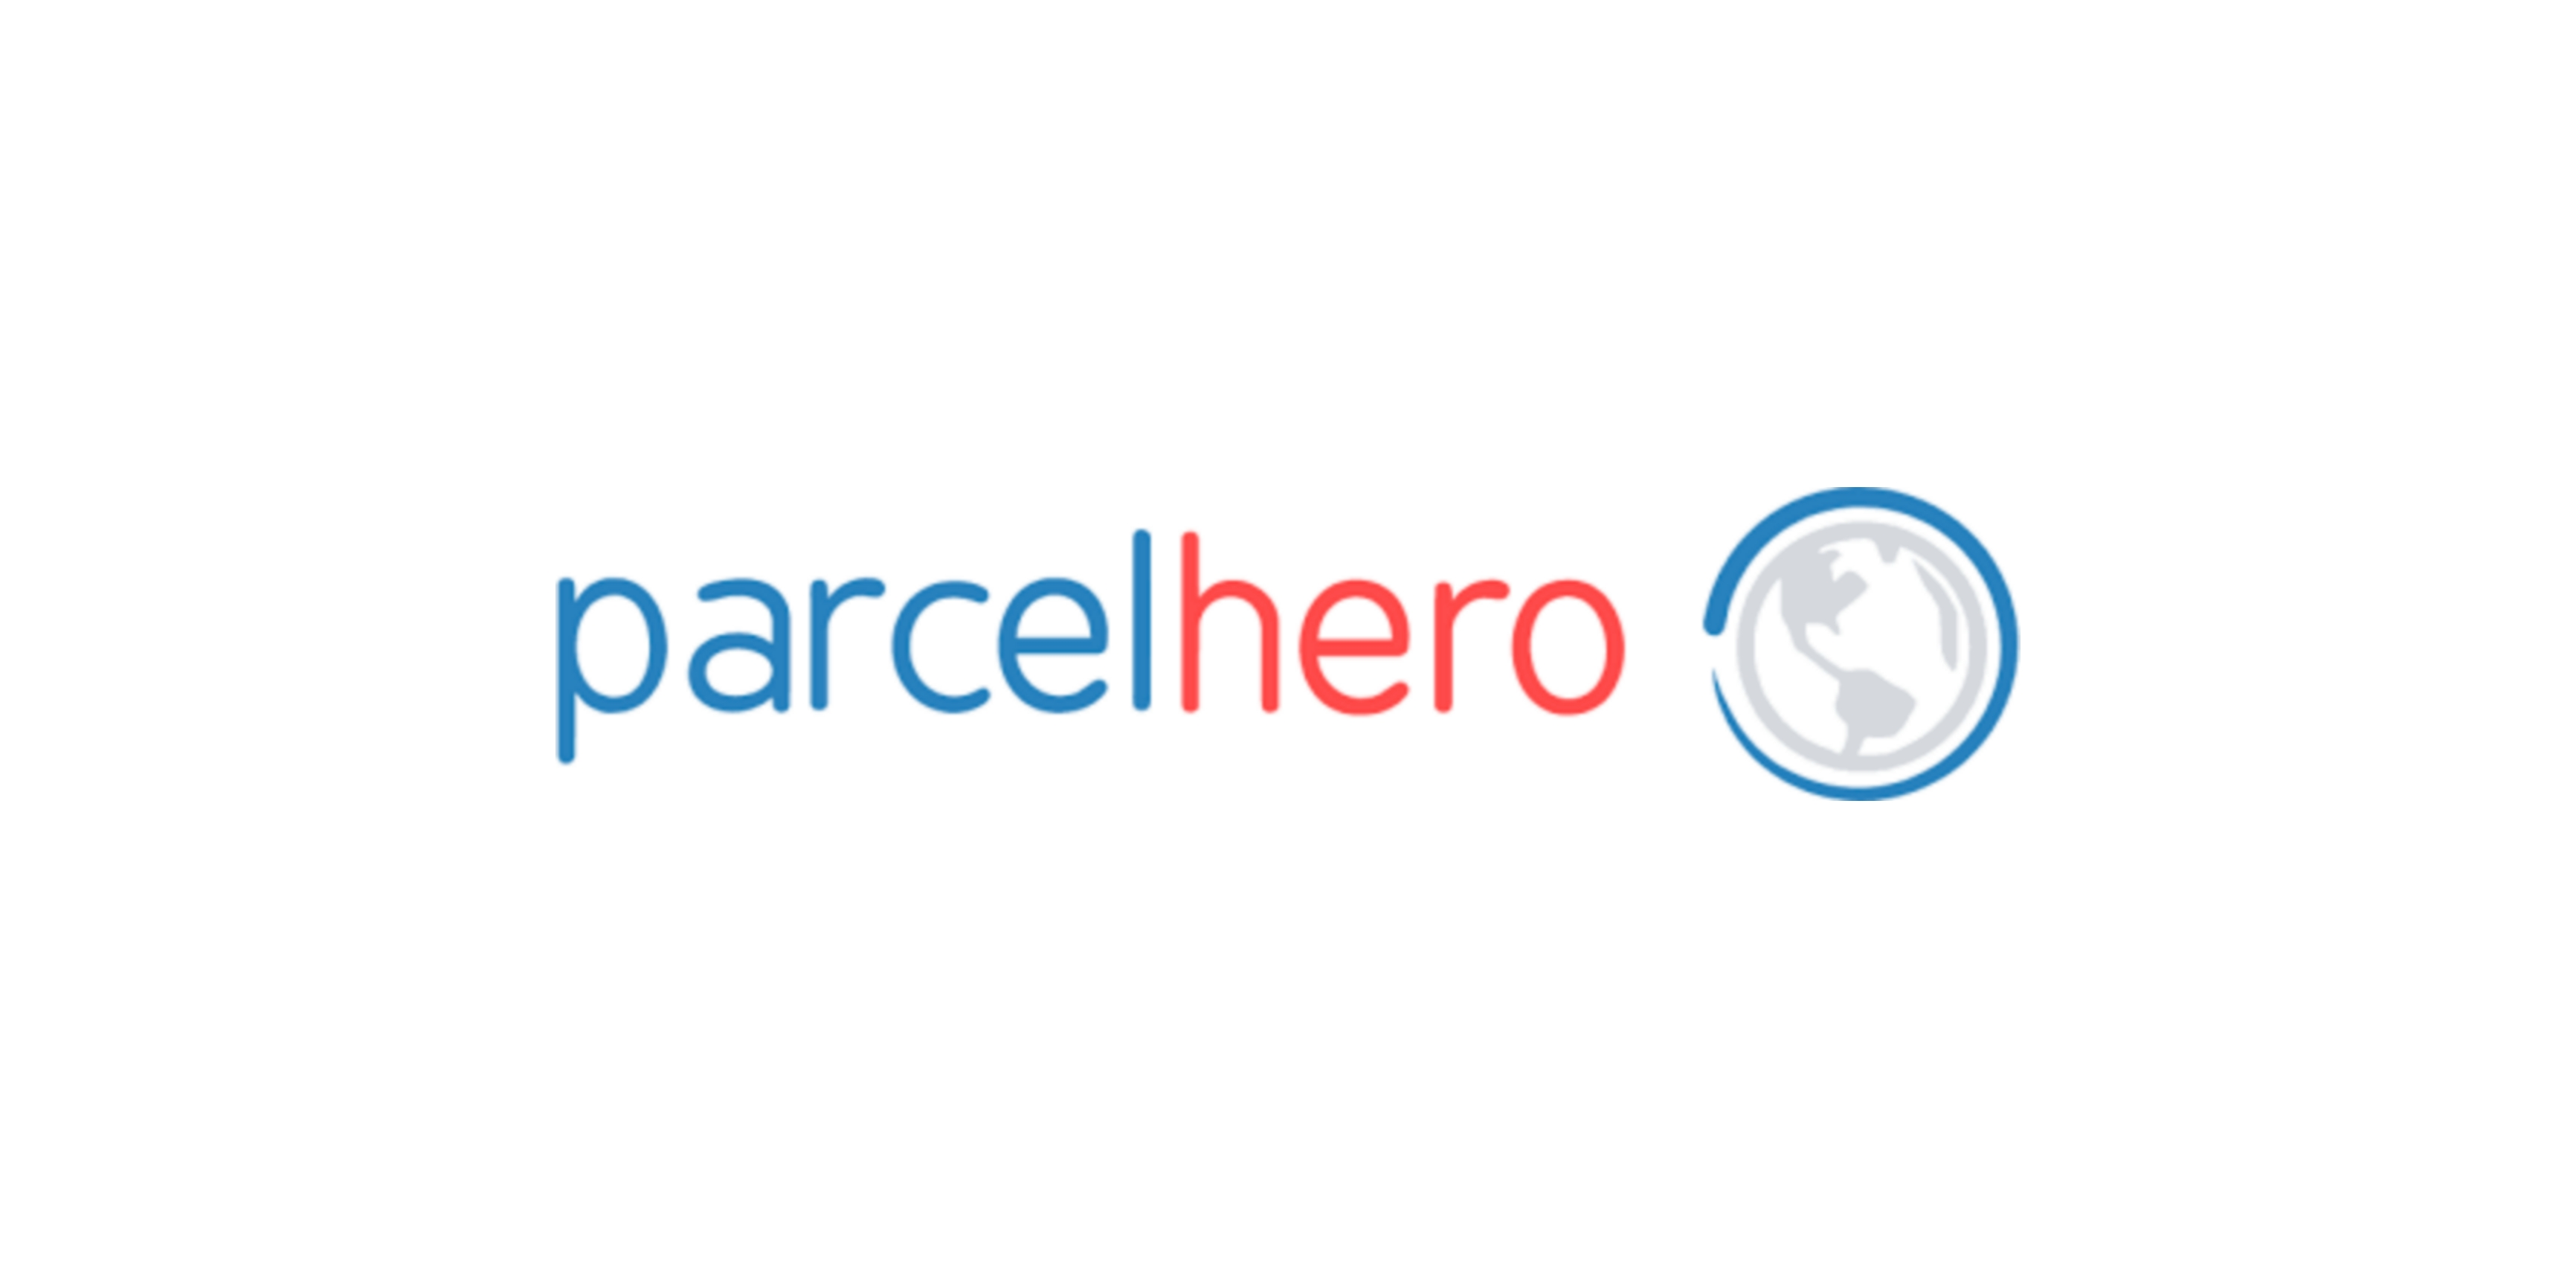 'Scexit': the Free Flow of Goods at Scottish Borders is Vital in Any Independence Planning, Says ParcelHero